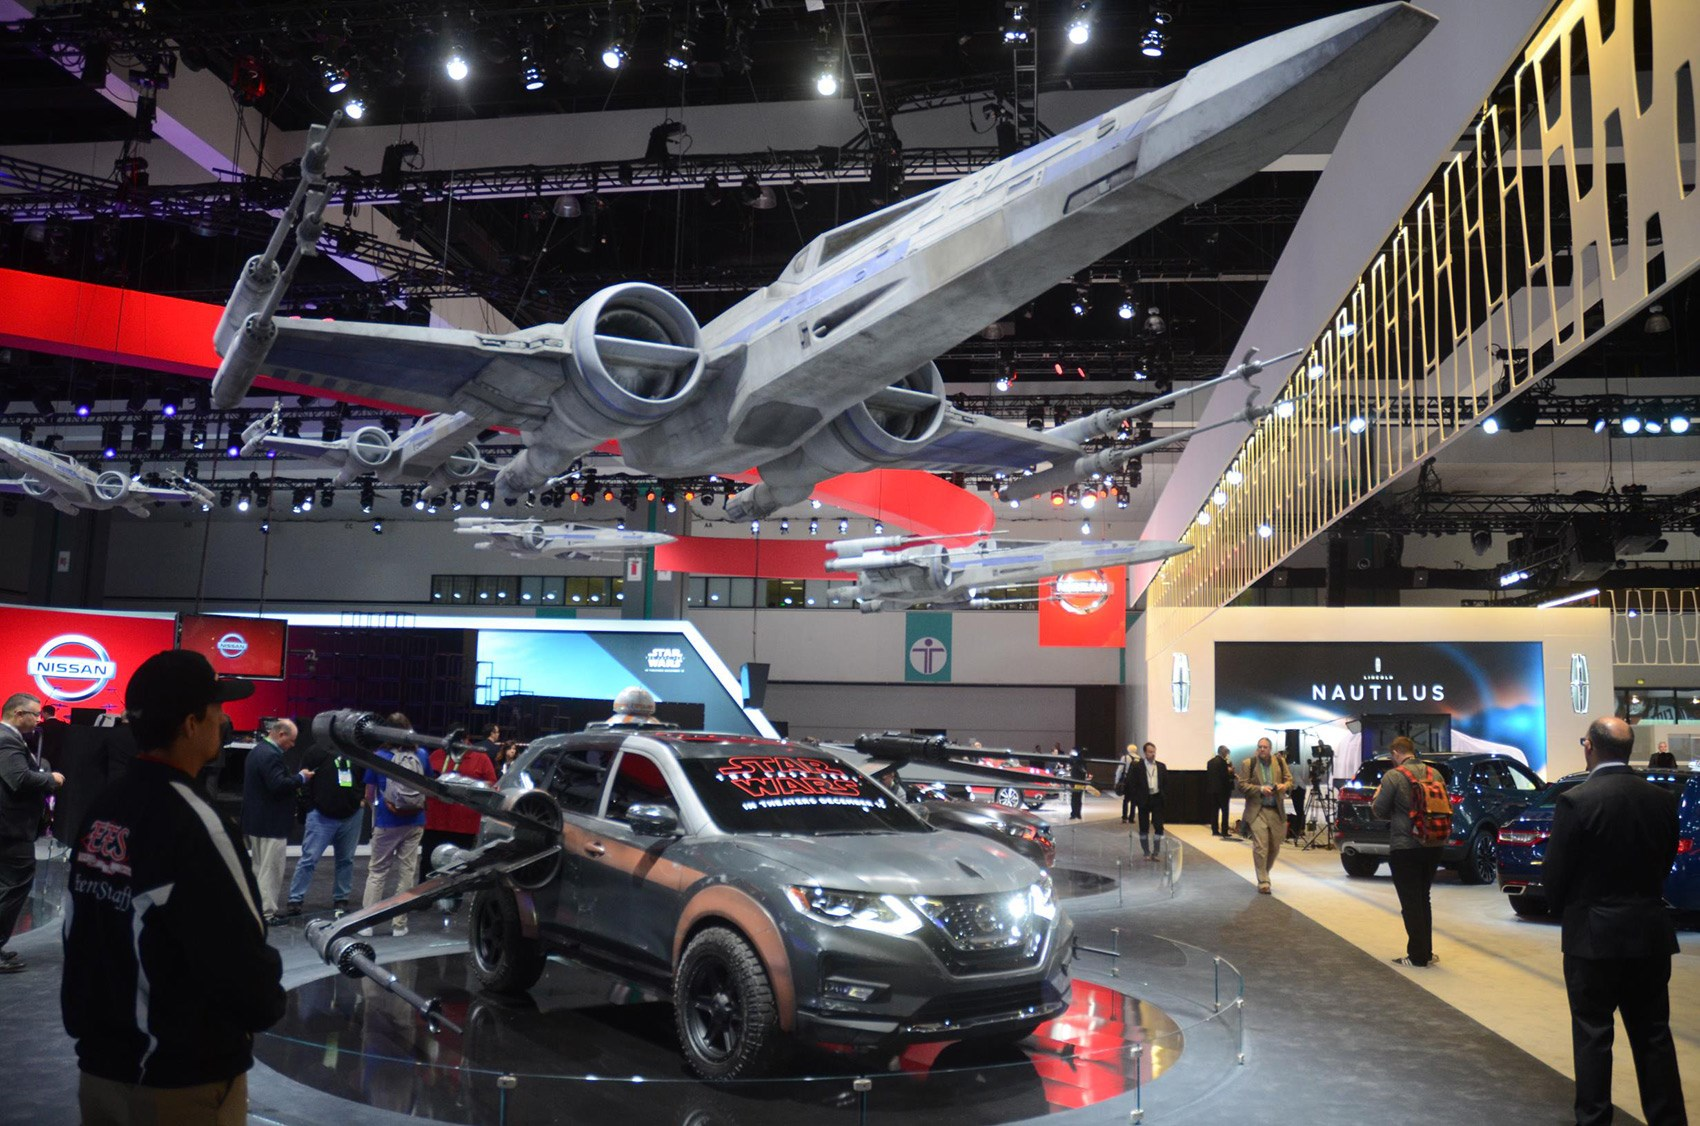 Star Wars Gimmicks On The Nissan Stand At La Motor Show